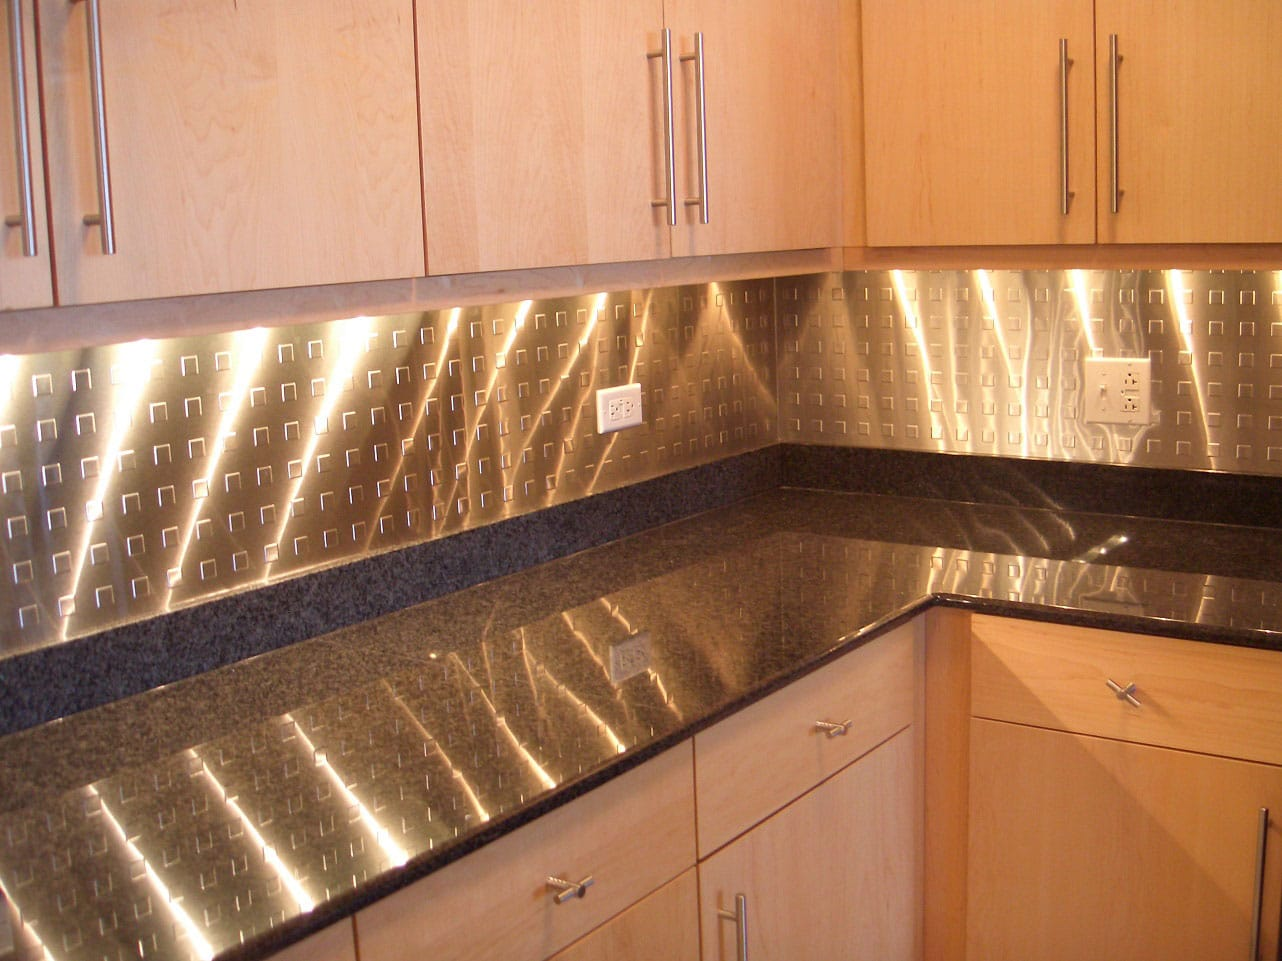 Backsplash Materials Why They Matter Direct Home